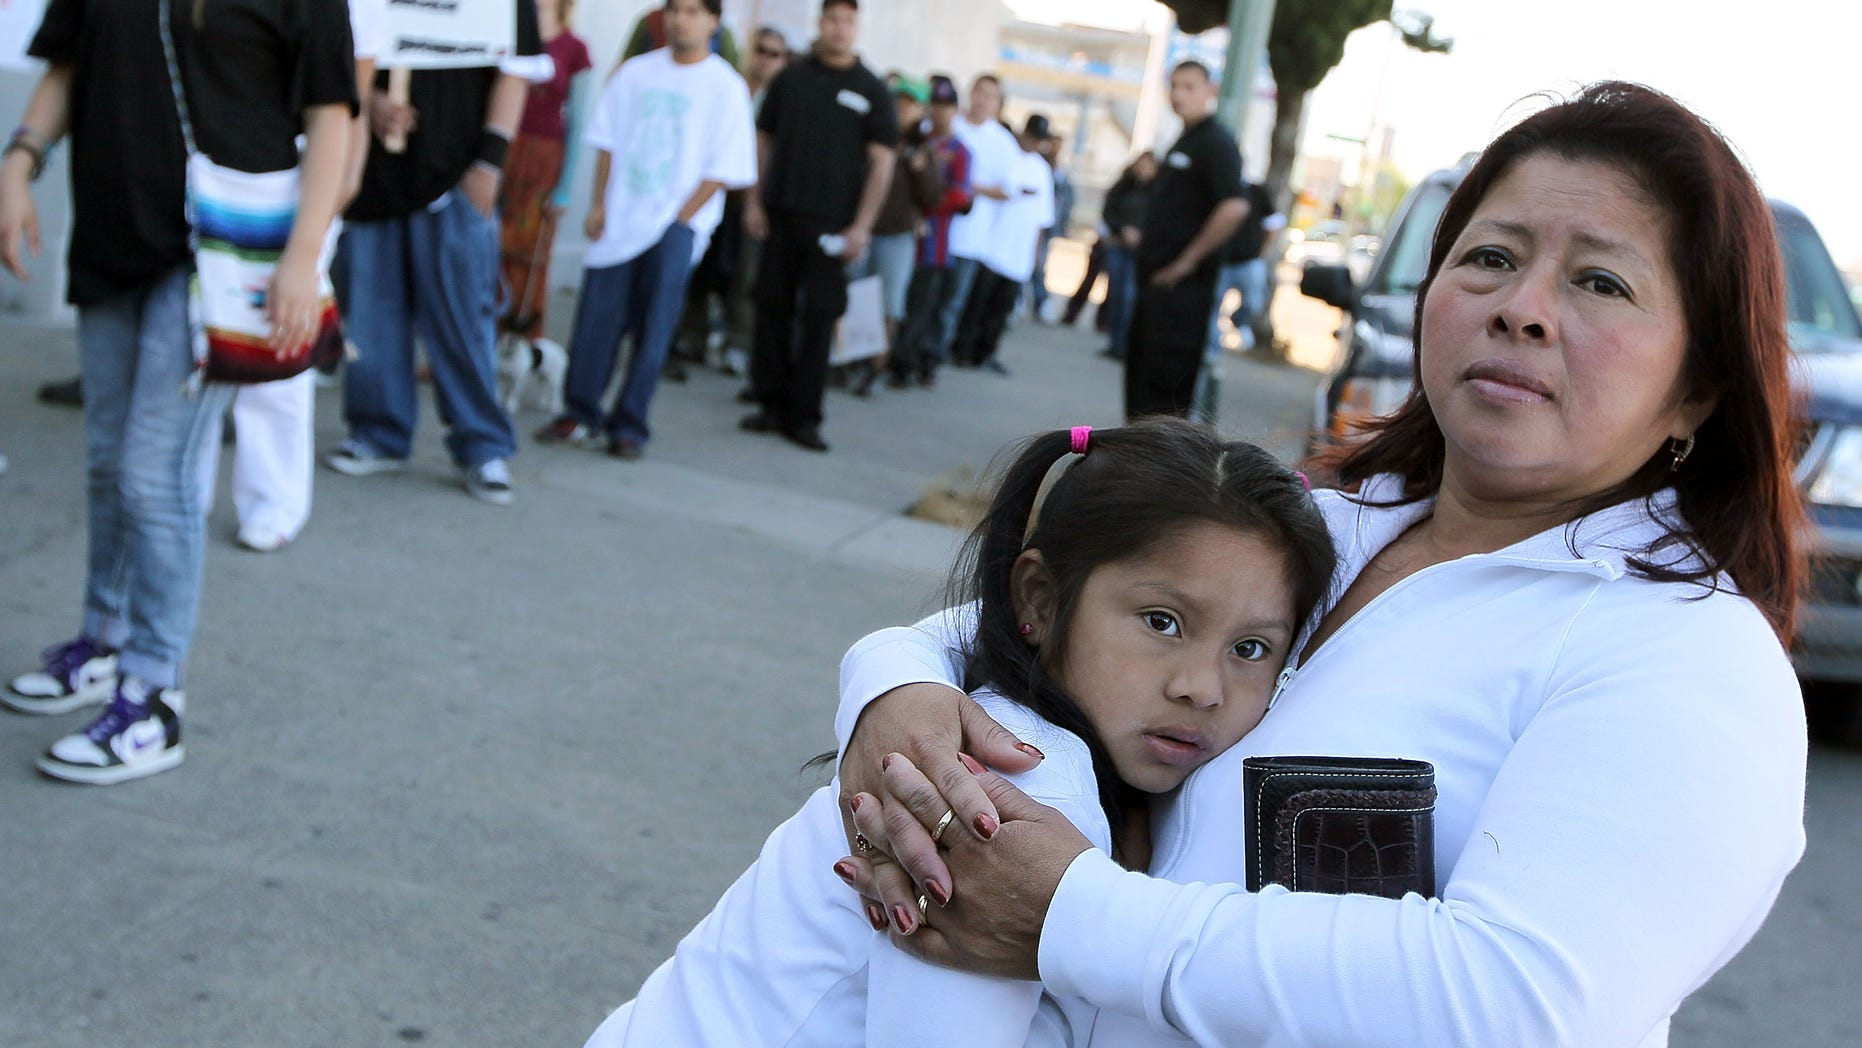 """OAKLAND, CA - APRIL 30:  A woman embraces her child as they watch the group """"Youth United For Justice"""" protest Arizona's new immigration law April 30, 2010 in Oakland, California. Dozens of people marched in protest of Arizona state bill 1070 which was signed into law this past week and gives law enforcement officials unprecedented authority to stop and question  suspected illegal immigrants.  (Photo by Justin Sullivan/Getty Images)"""